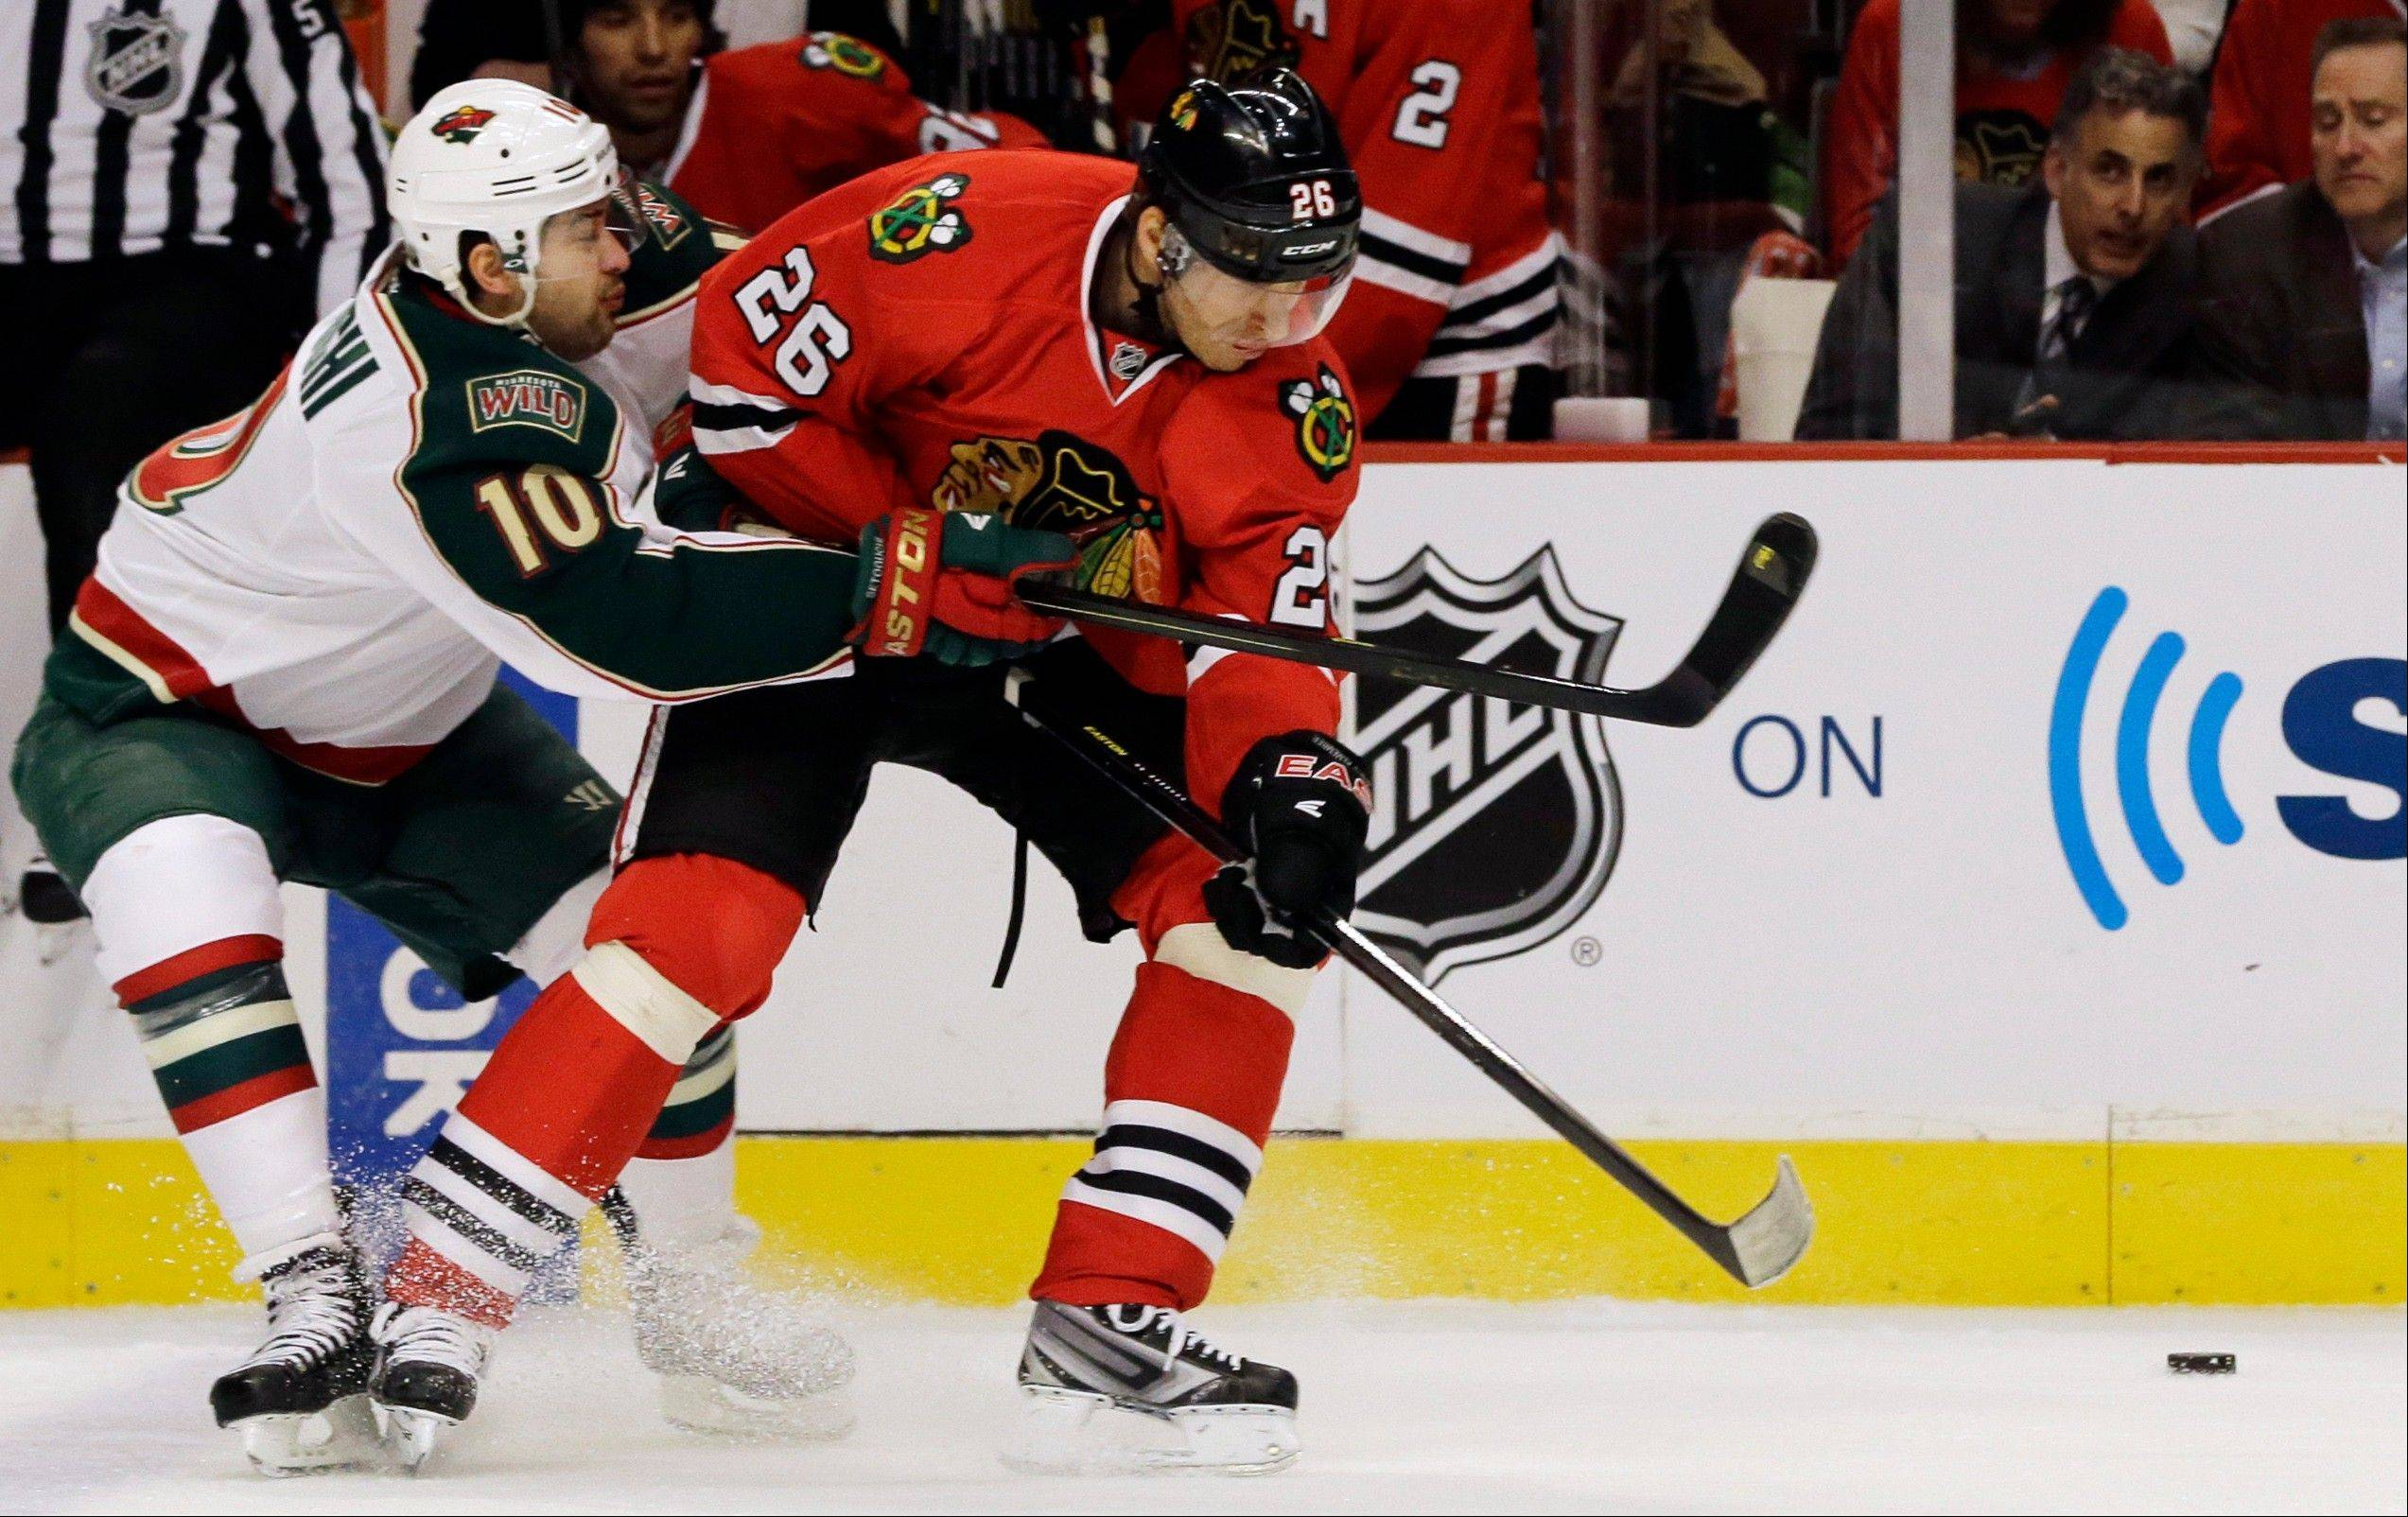 Minnesota Wild's Devin Setoguchi, left, battles for the puck with Chicago Blackhawks' Michal Handzus during the first period of Game 2 of an NHL hockey Stanley Cup first-round playoff series in Chicago, Friday, May 3, 2013.